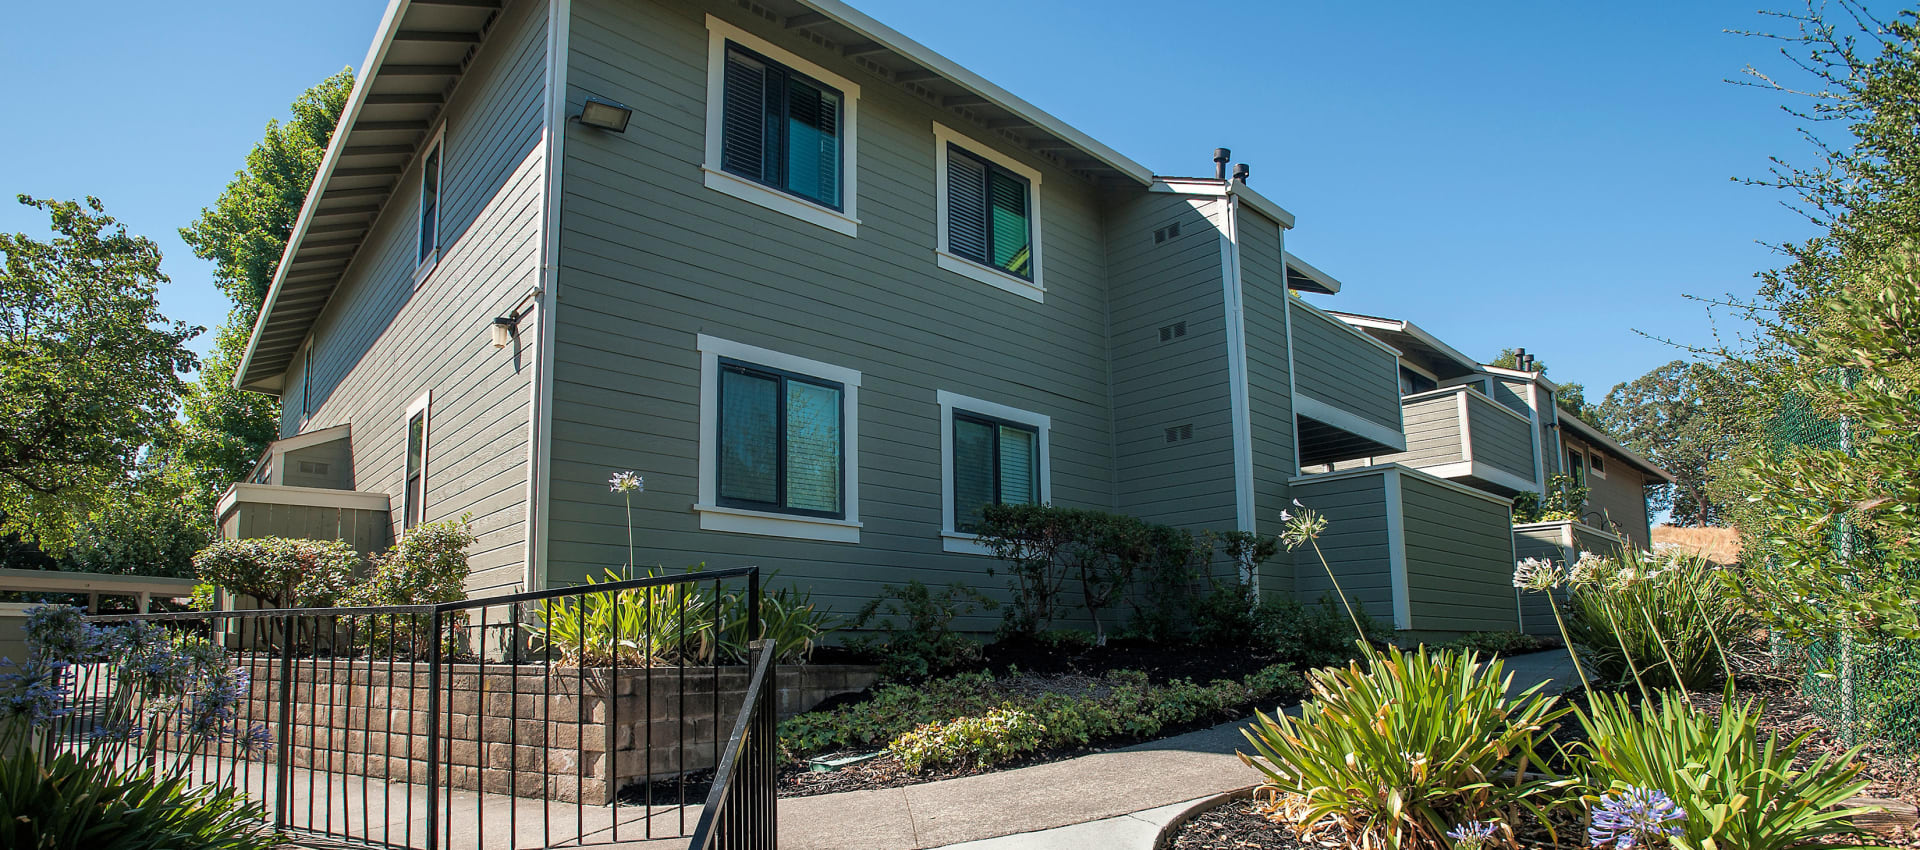 Exterior of Ridgecrest Apartment Homes in Martinez, California